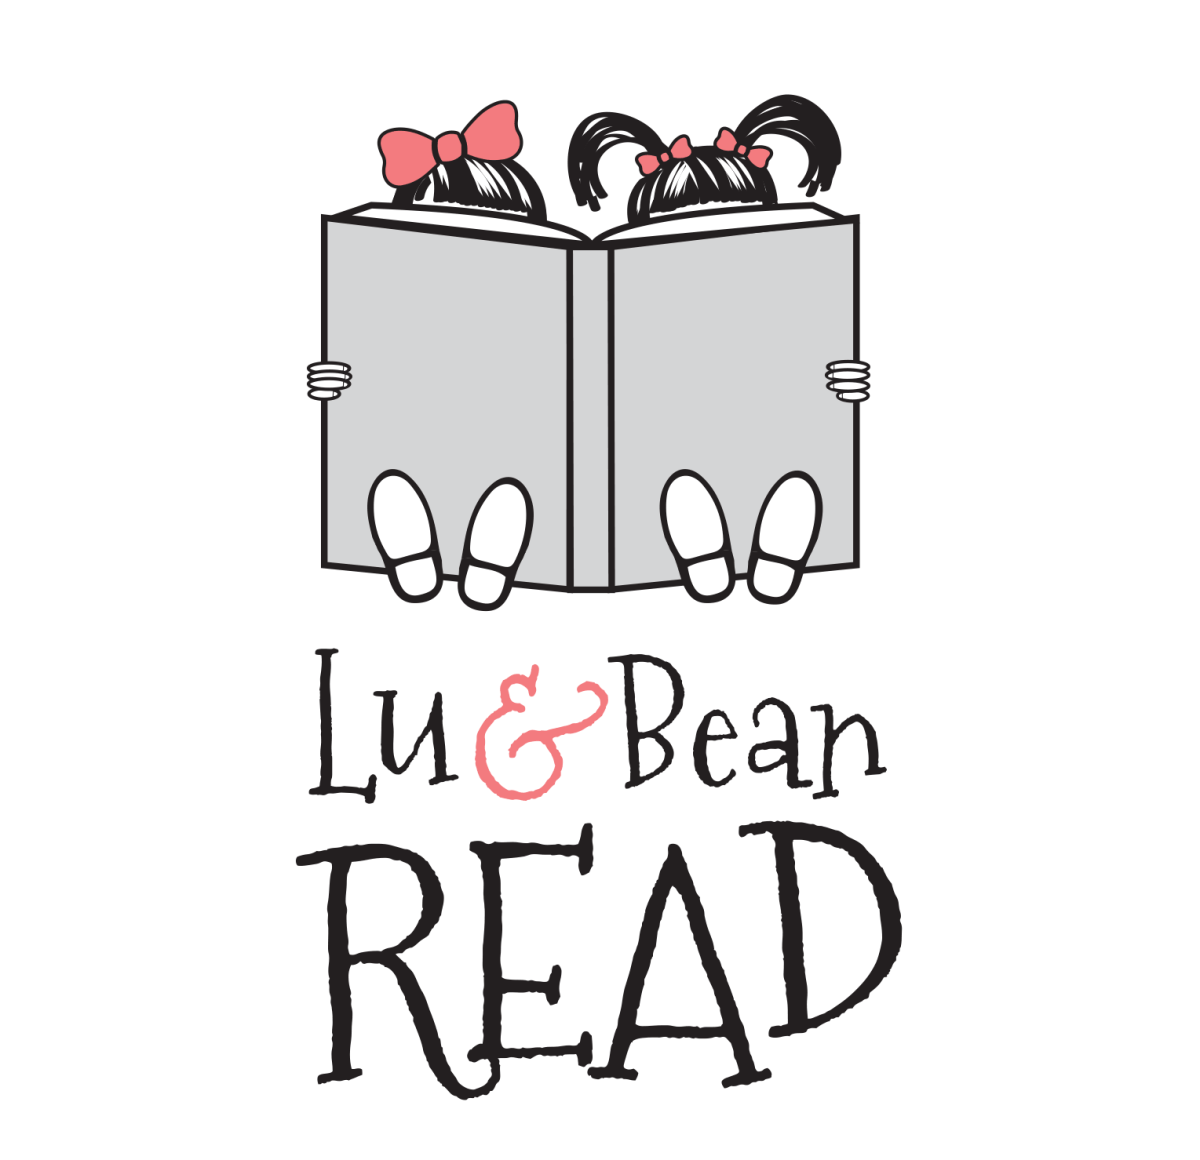 Lu and Bean Read